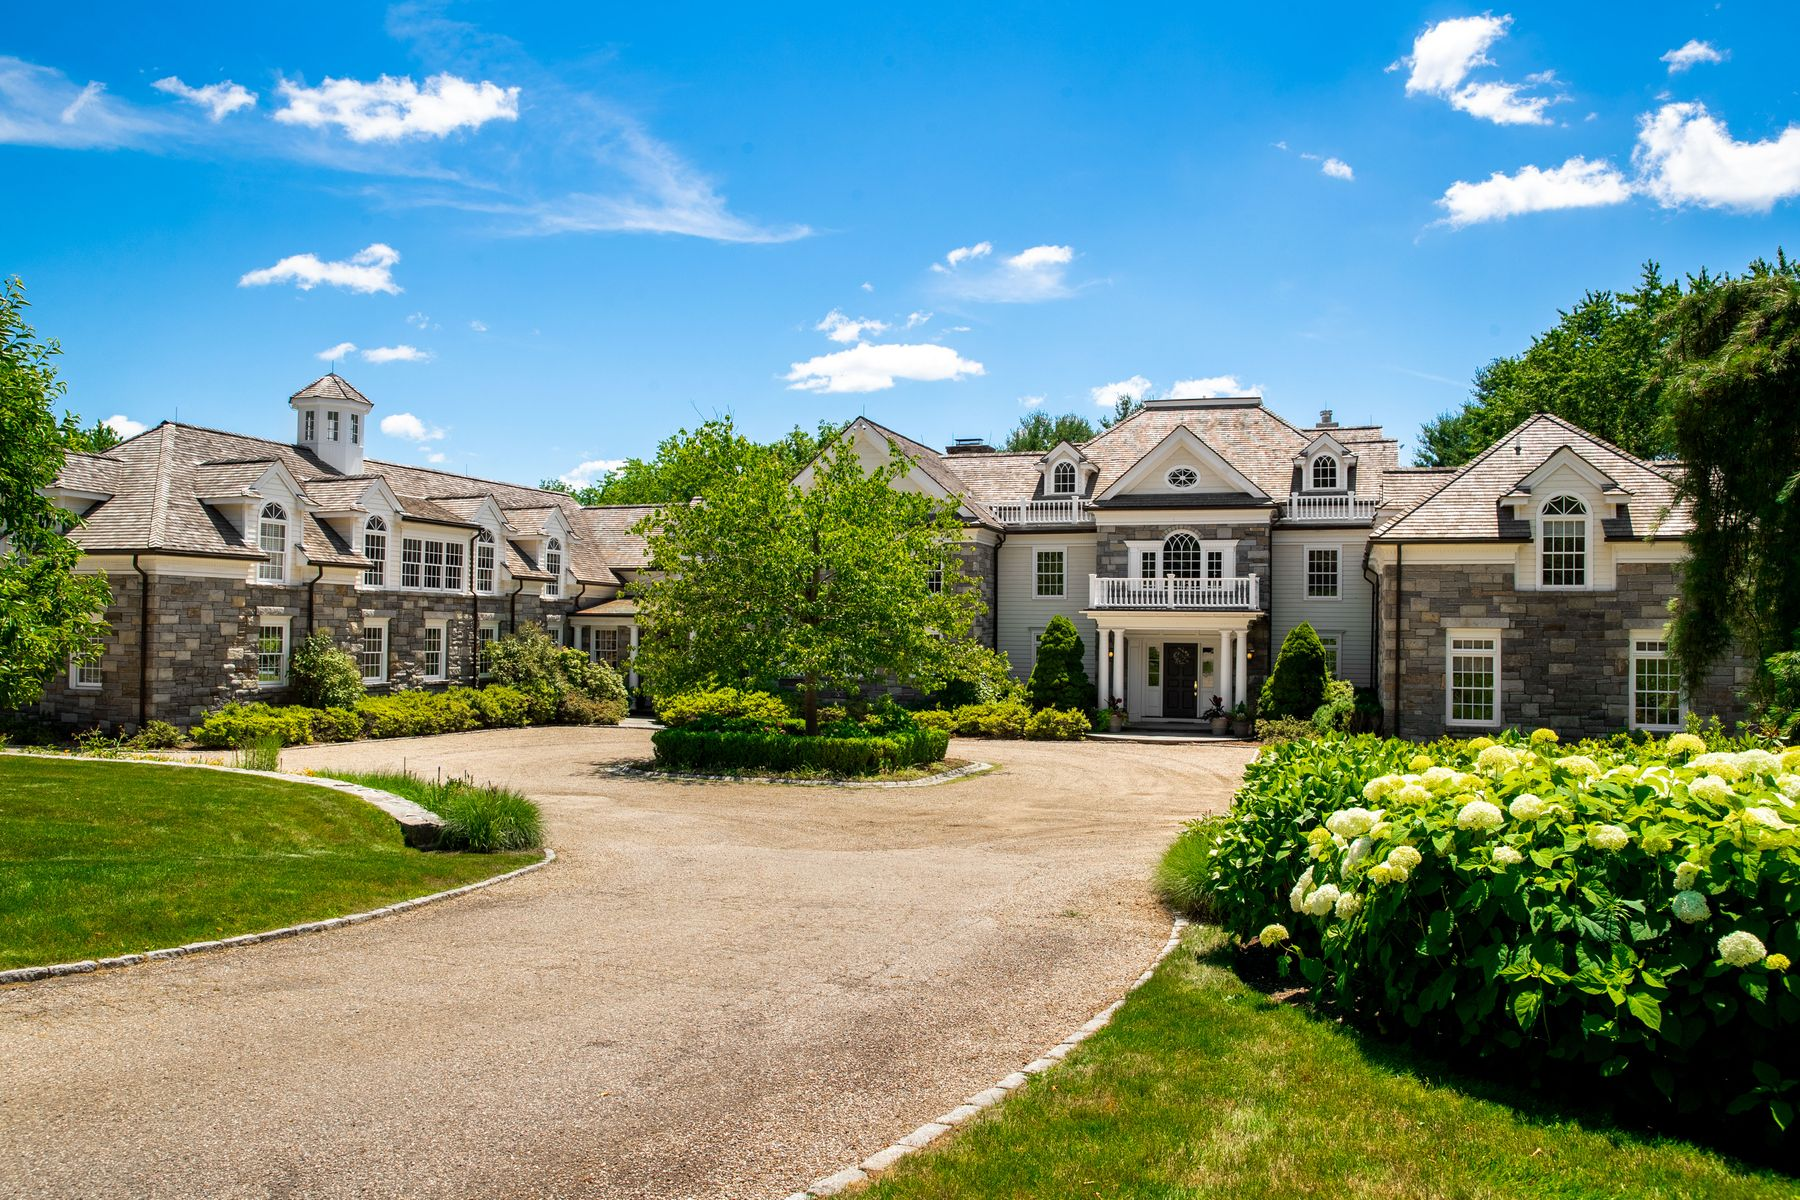 Single Family Homes for Sale at Extraordinary Country Estate 808 North Street Greenwich, Connecticut 06831 United States